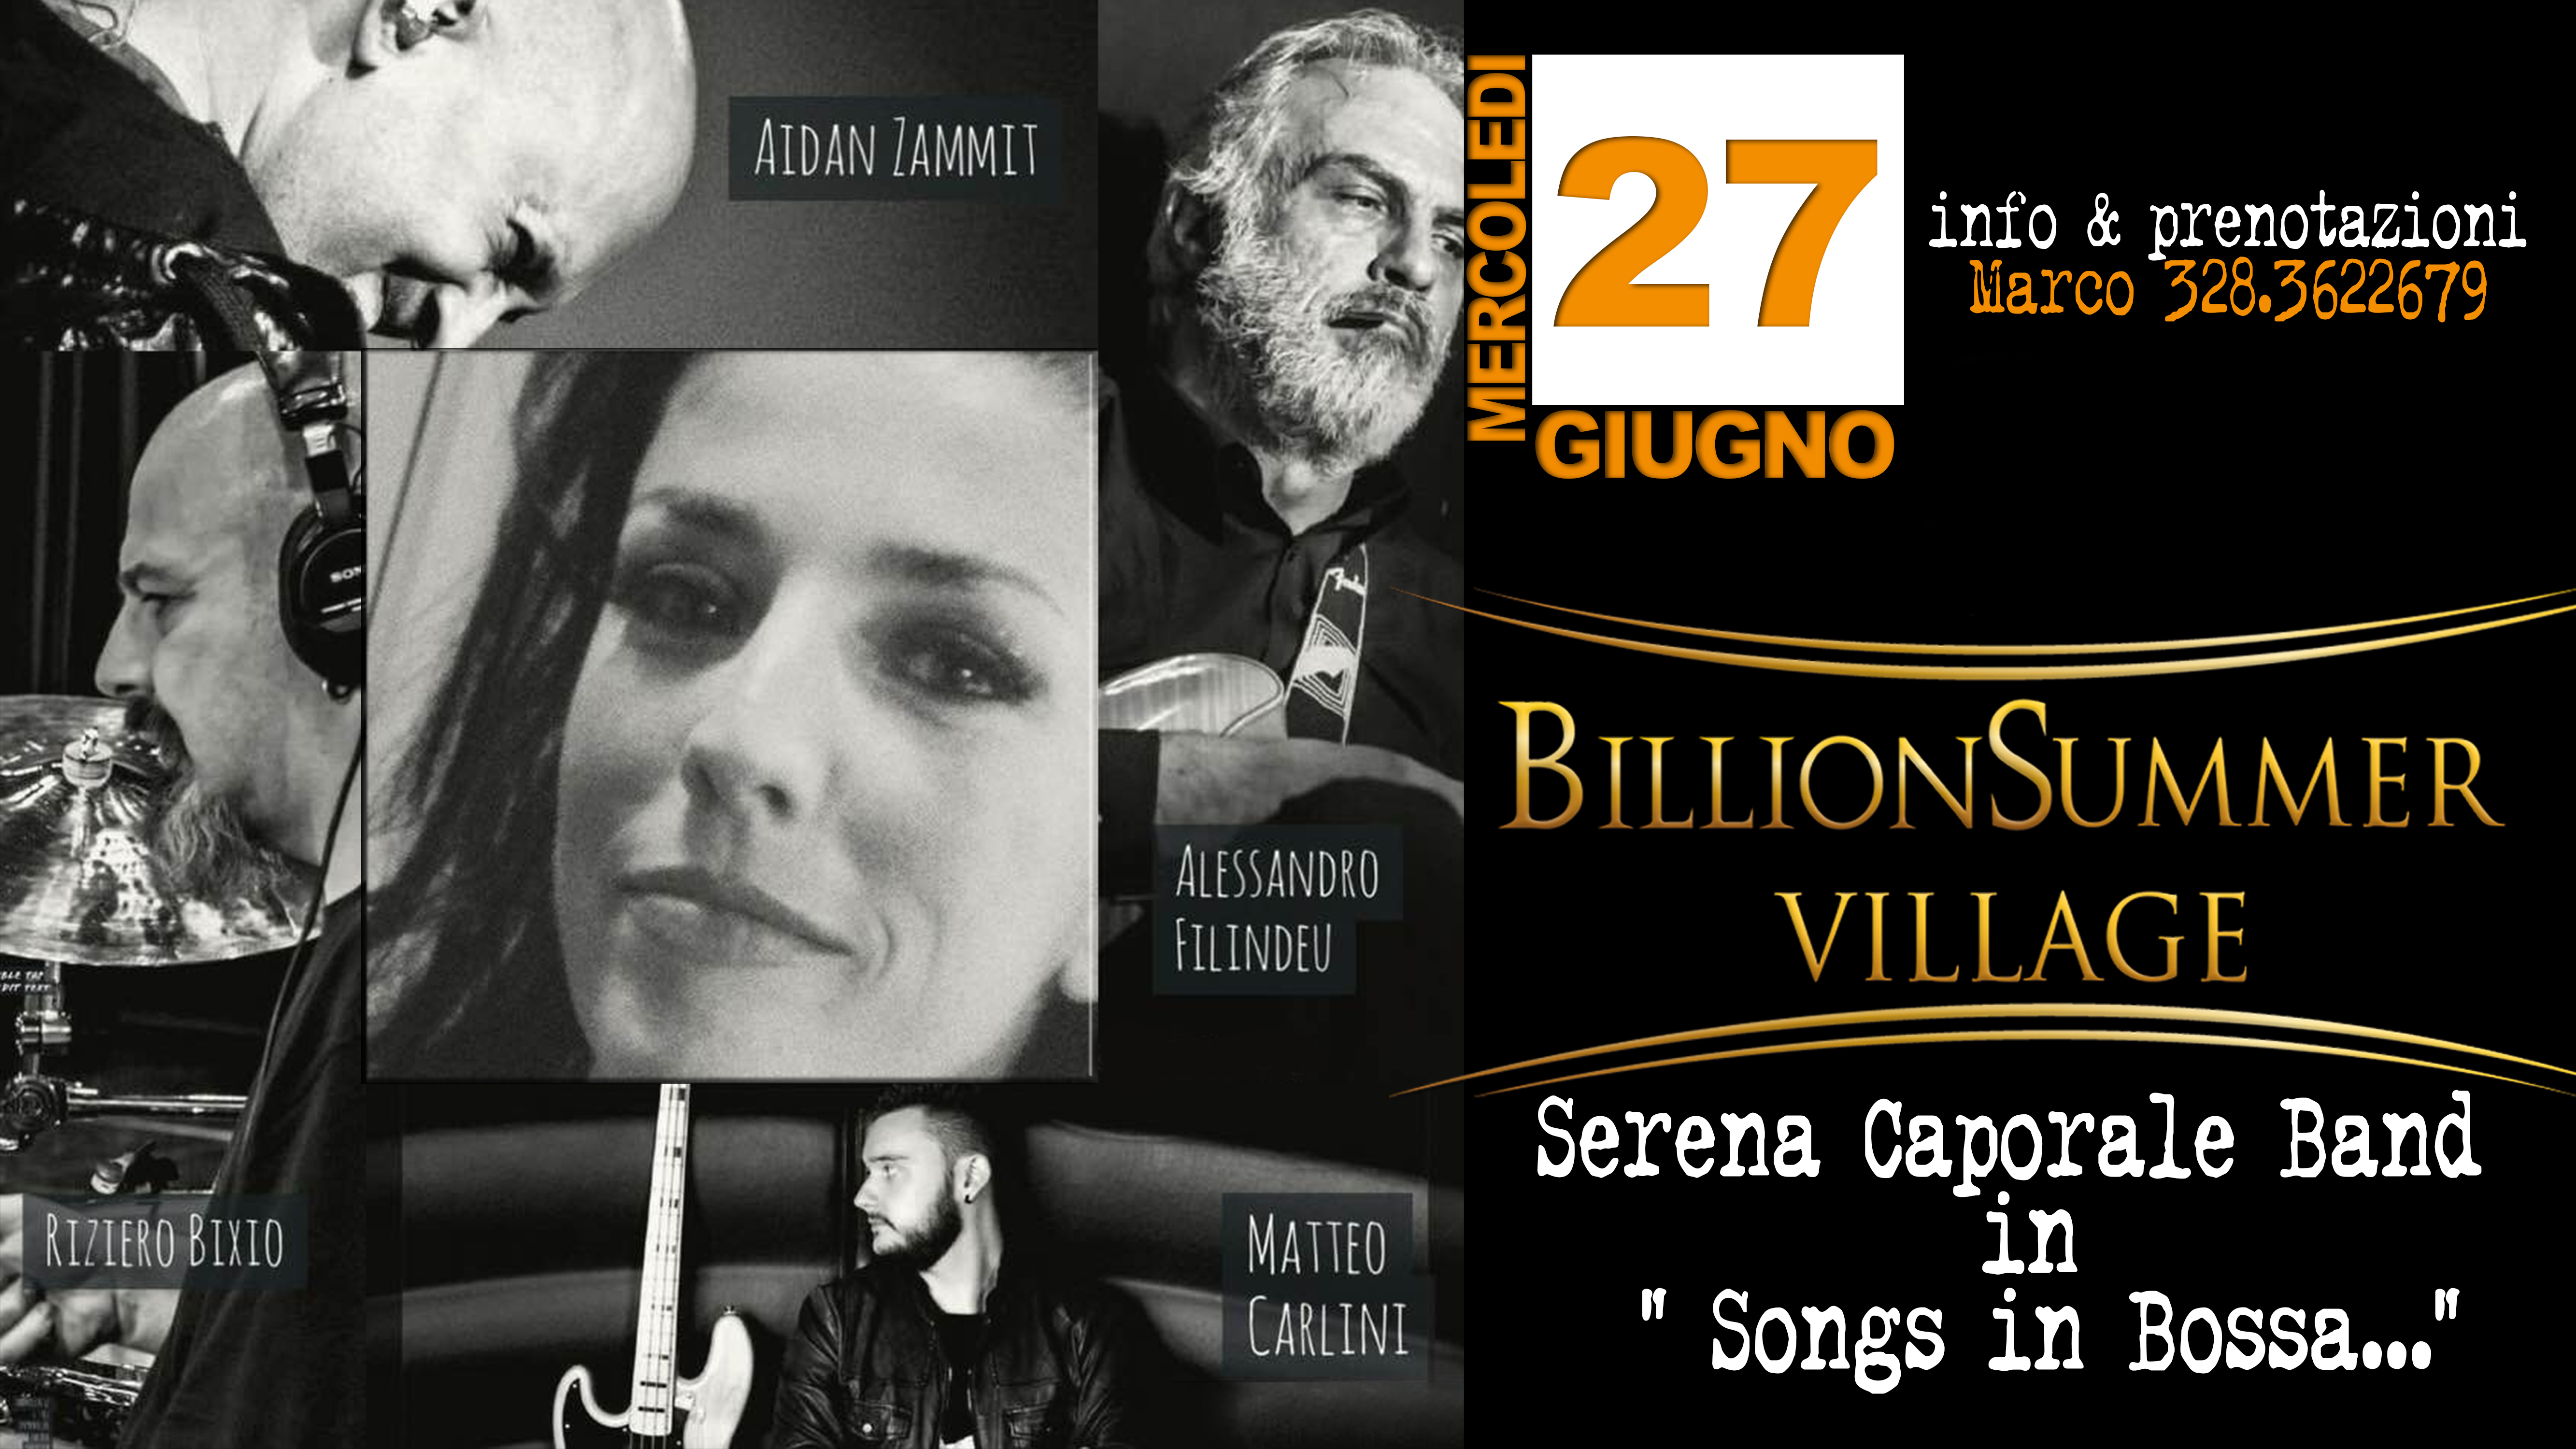 Serena Caporale Band - Song in Bossa